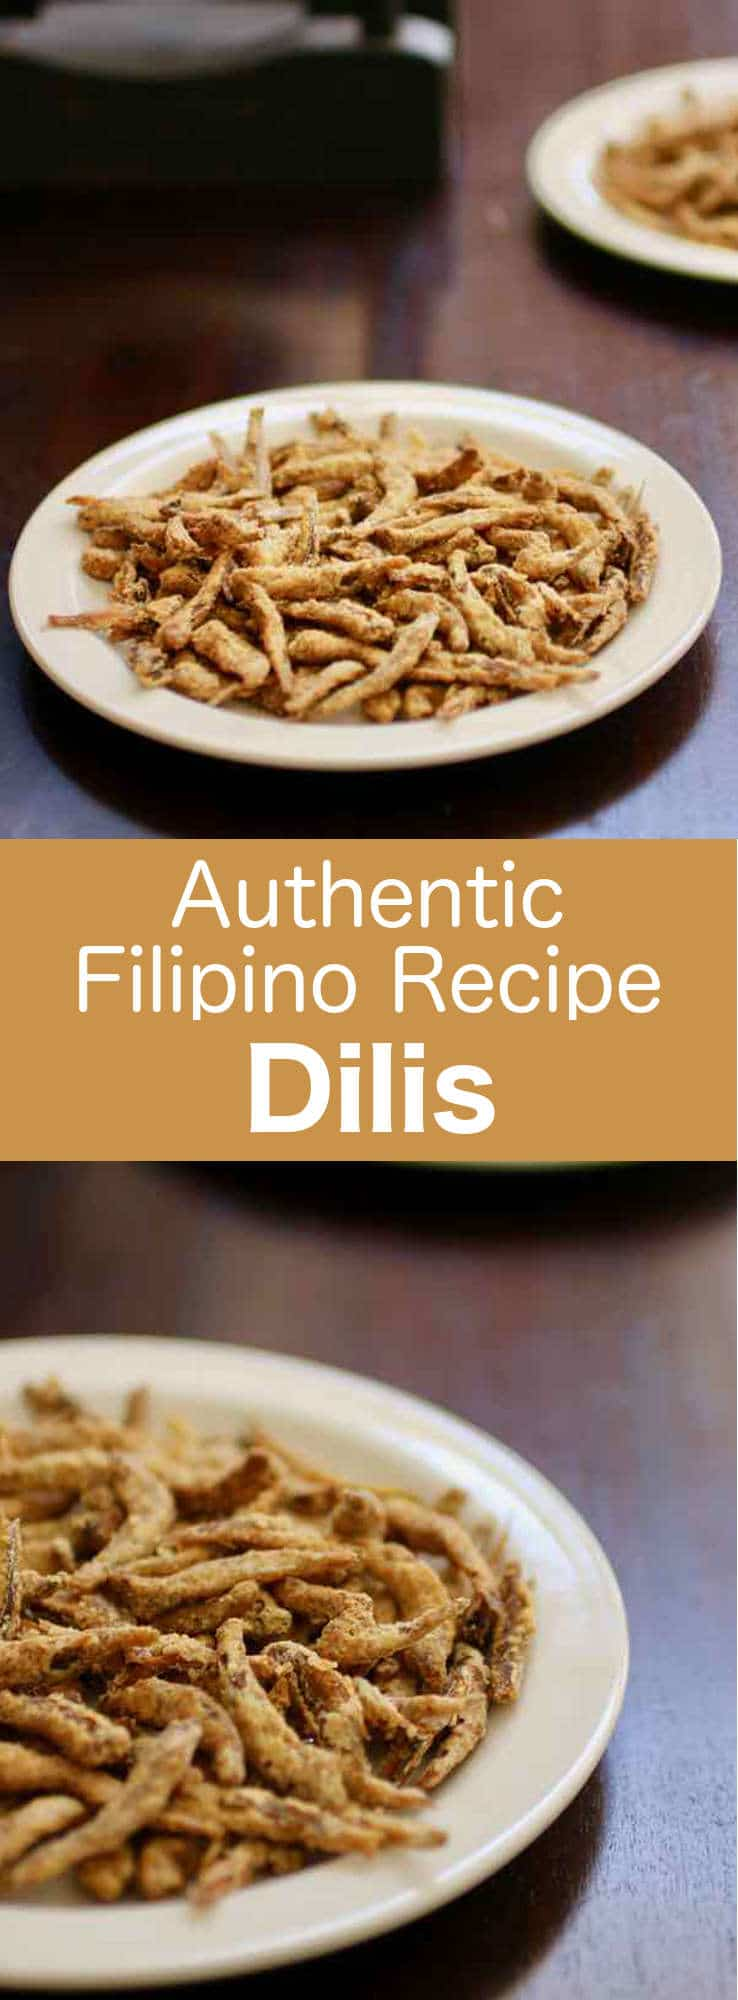 Dilis traditional filipino recipe 196 flavors dilis are a filipino delicacy consisting of anchovies often dried that are lightly battered forumfinder Choice Image